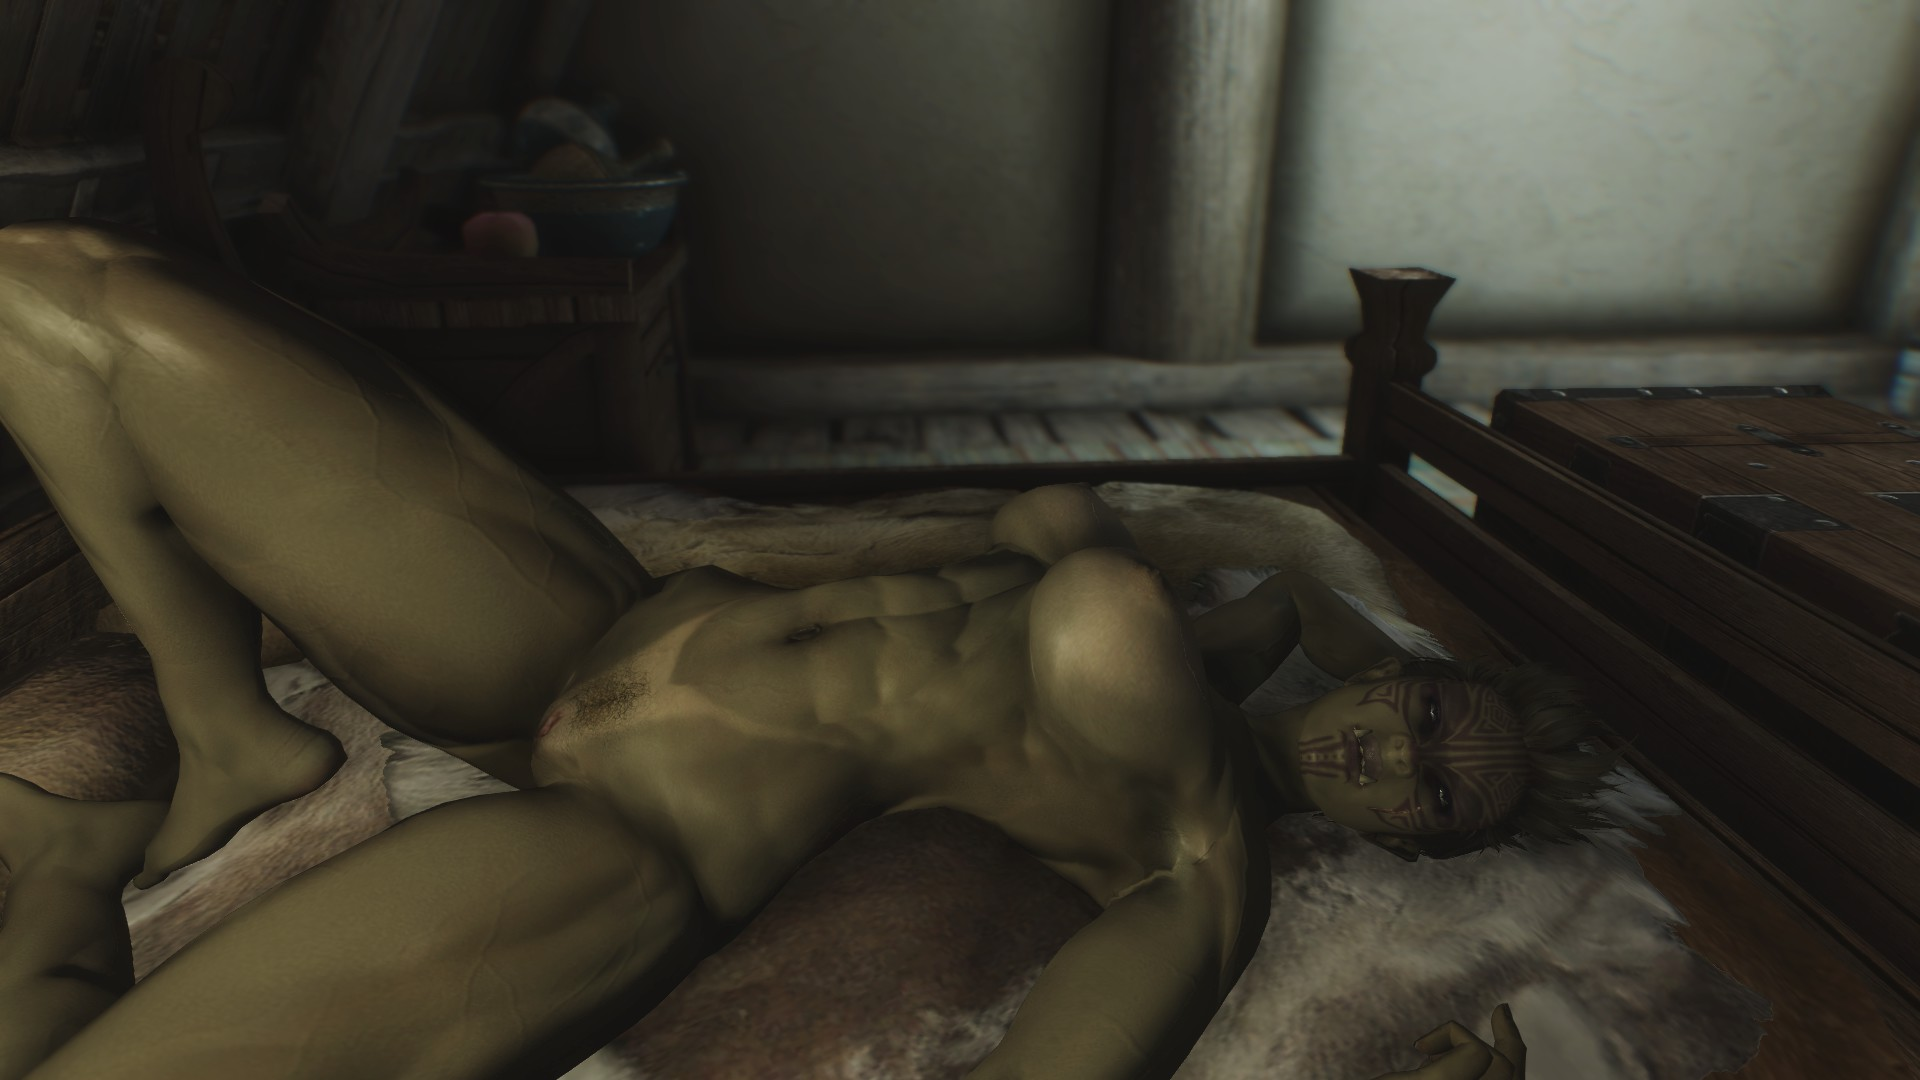 Anime skyrim porn games sexy orc girls  sexy photo